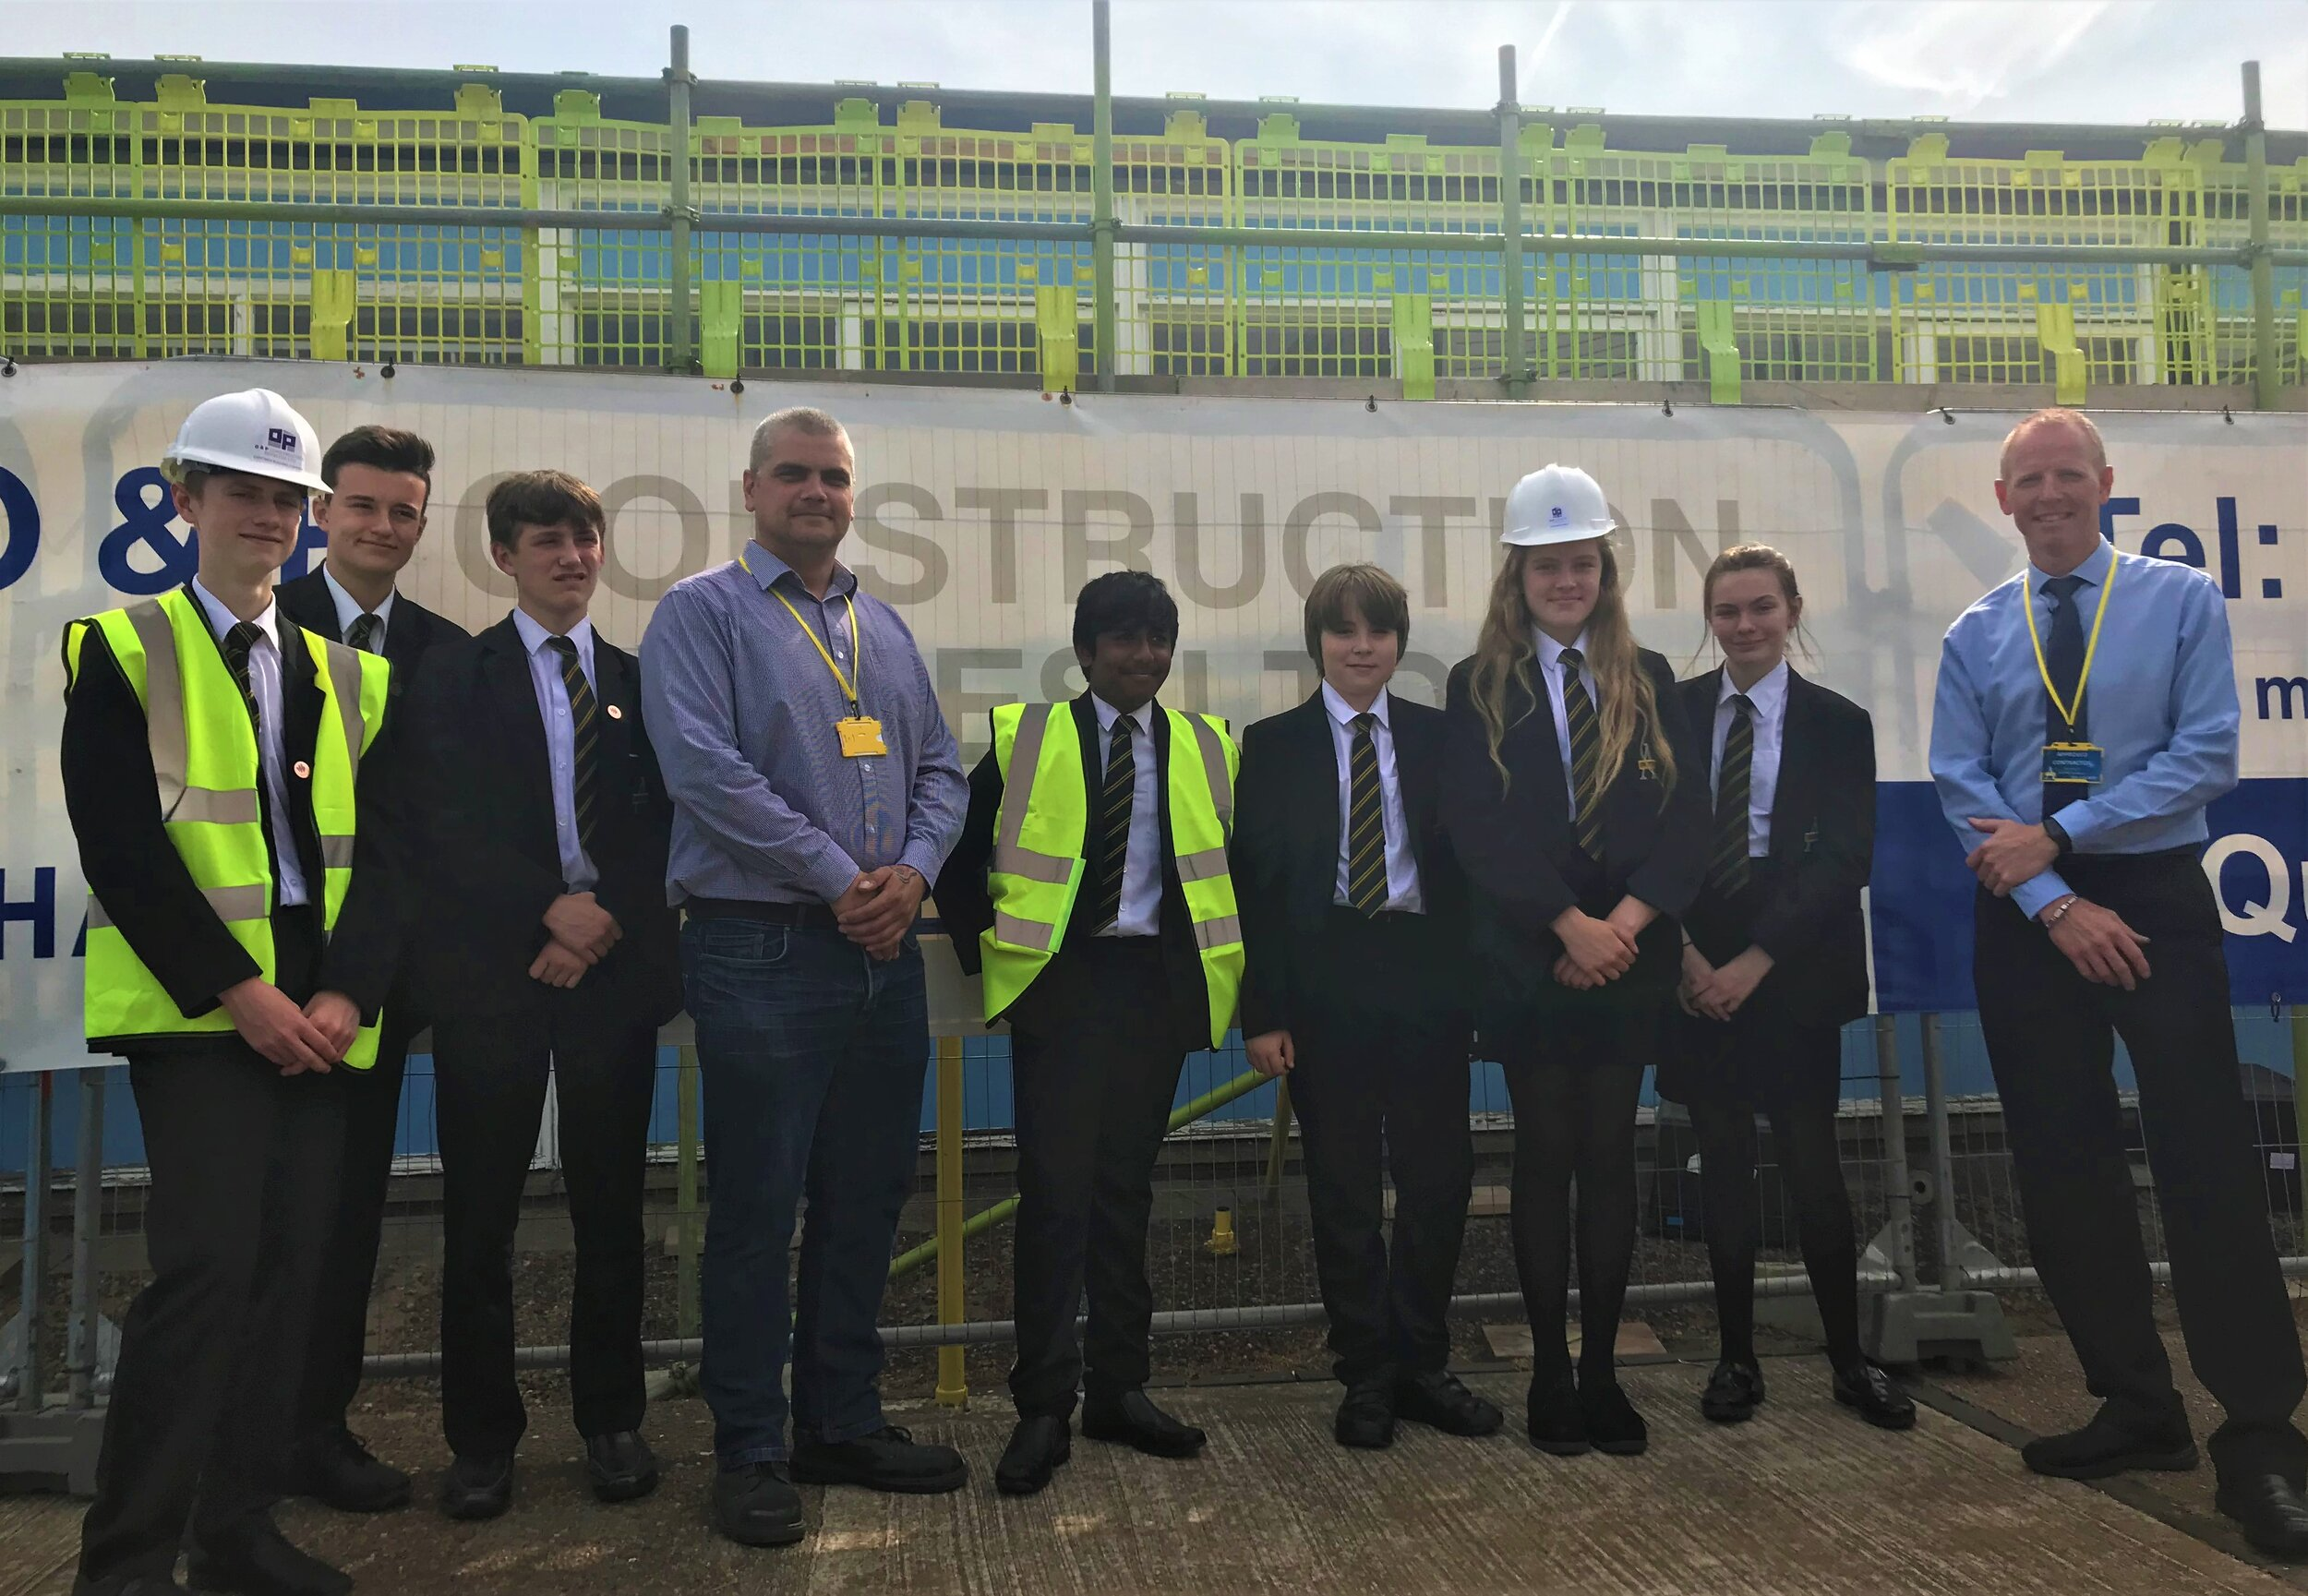 Pupils from Swinton Academy - along with representatives from Rotherham-based OP Construction. Penguin PR: public relations, media and communications